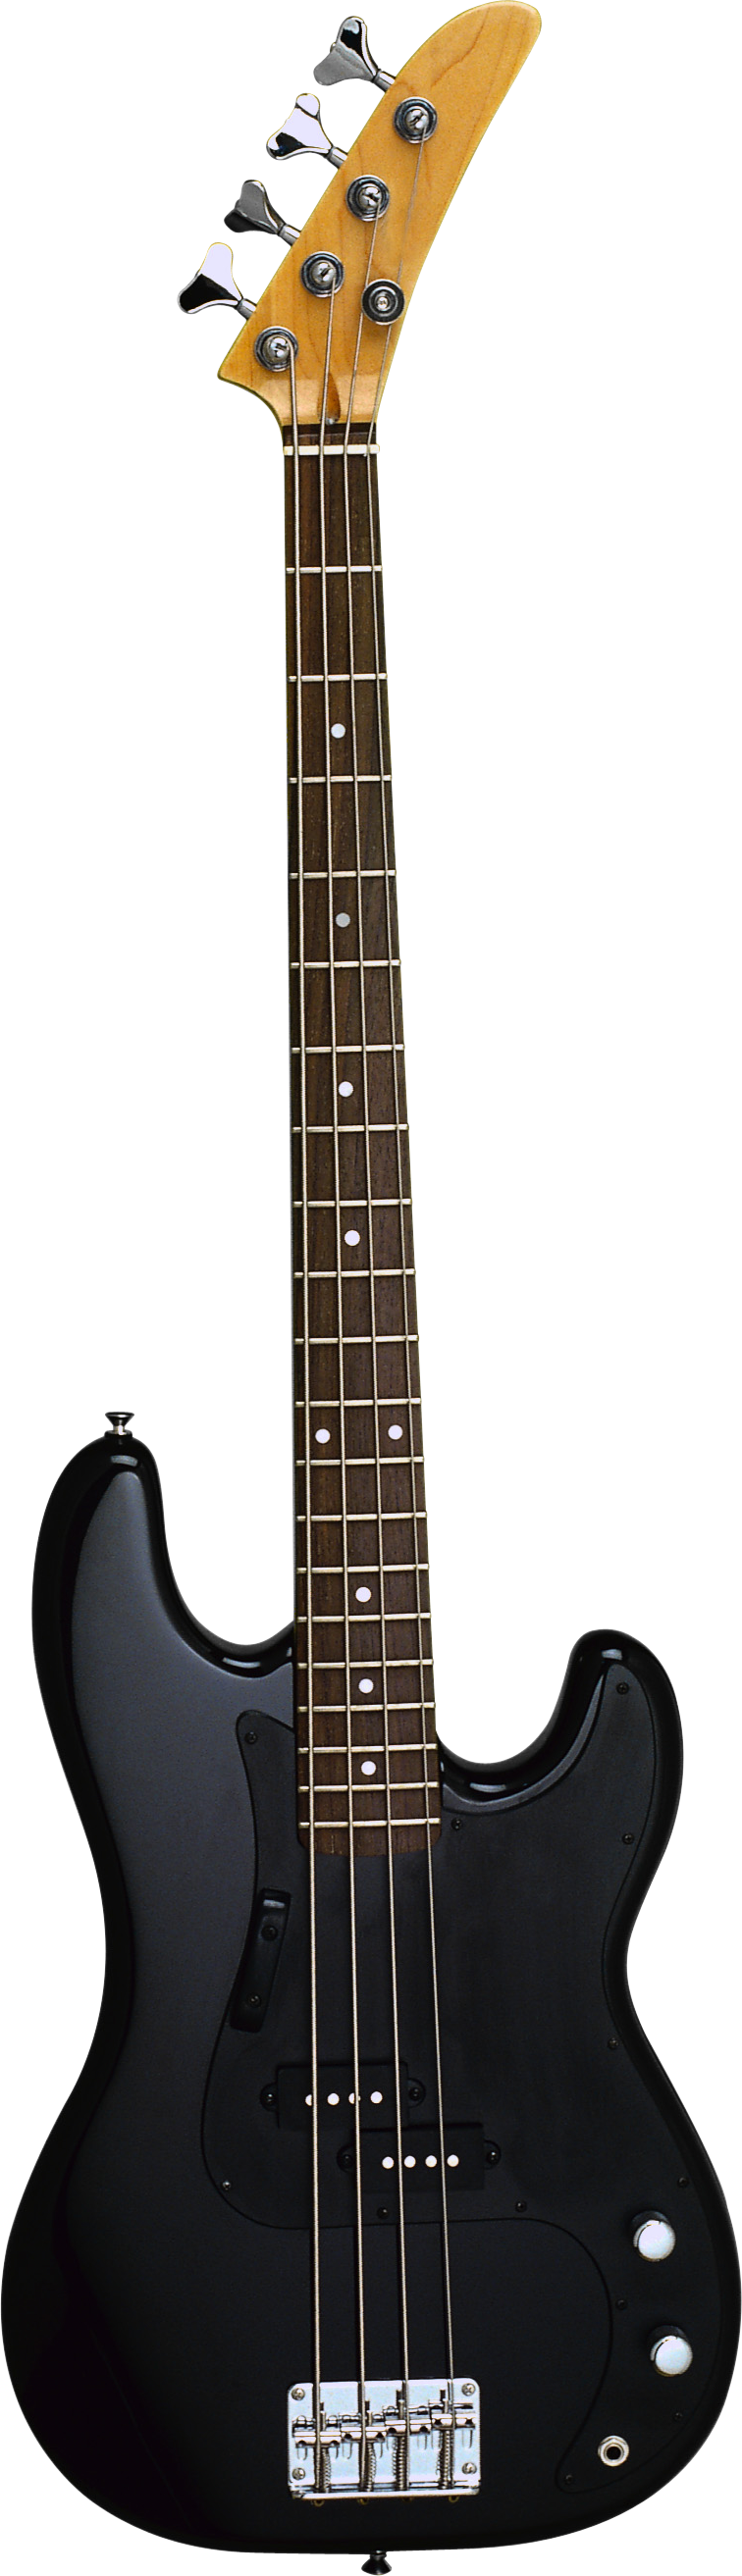 Clipart guitar metal. Electric png images